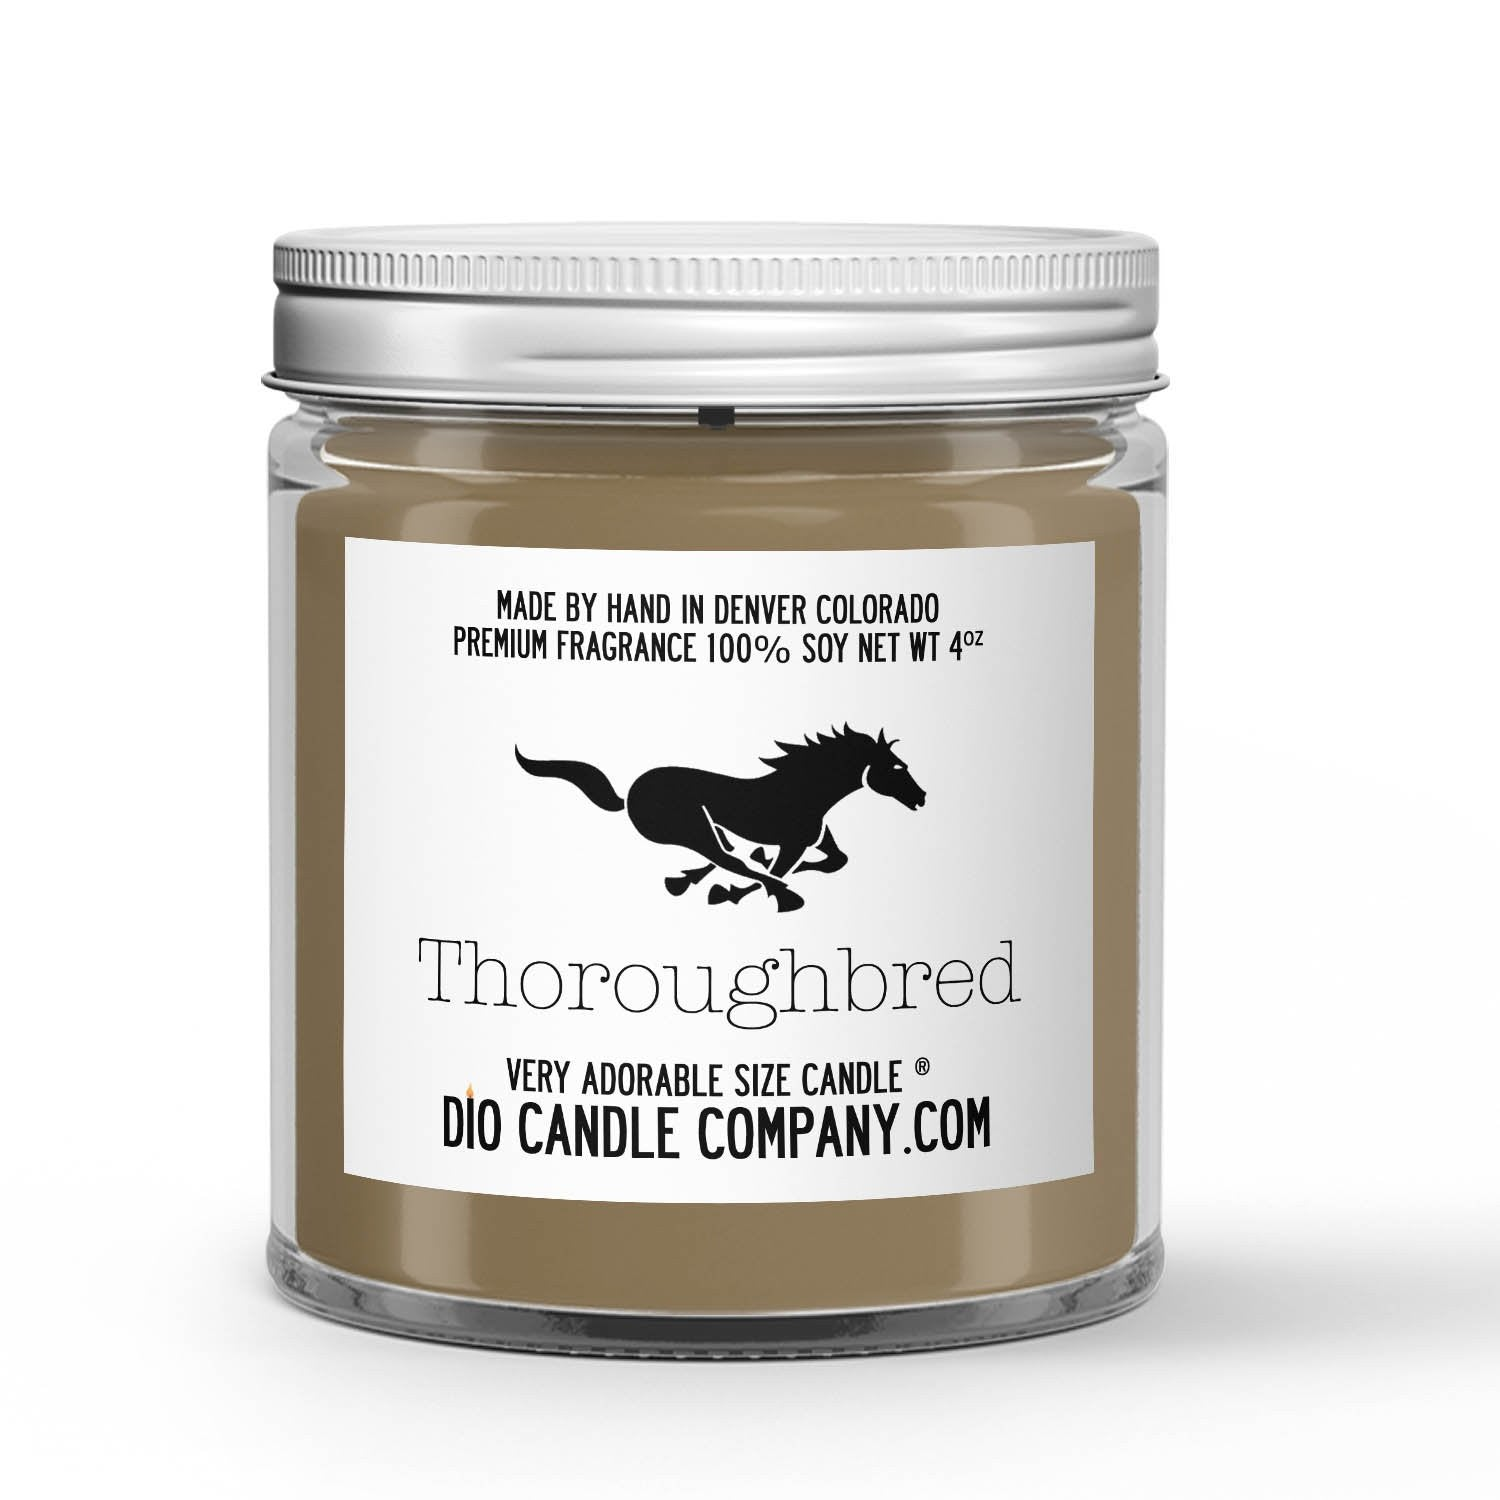 Thoroughbred Candles and Wax Melts